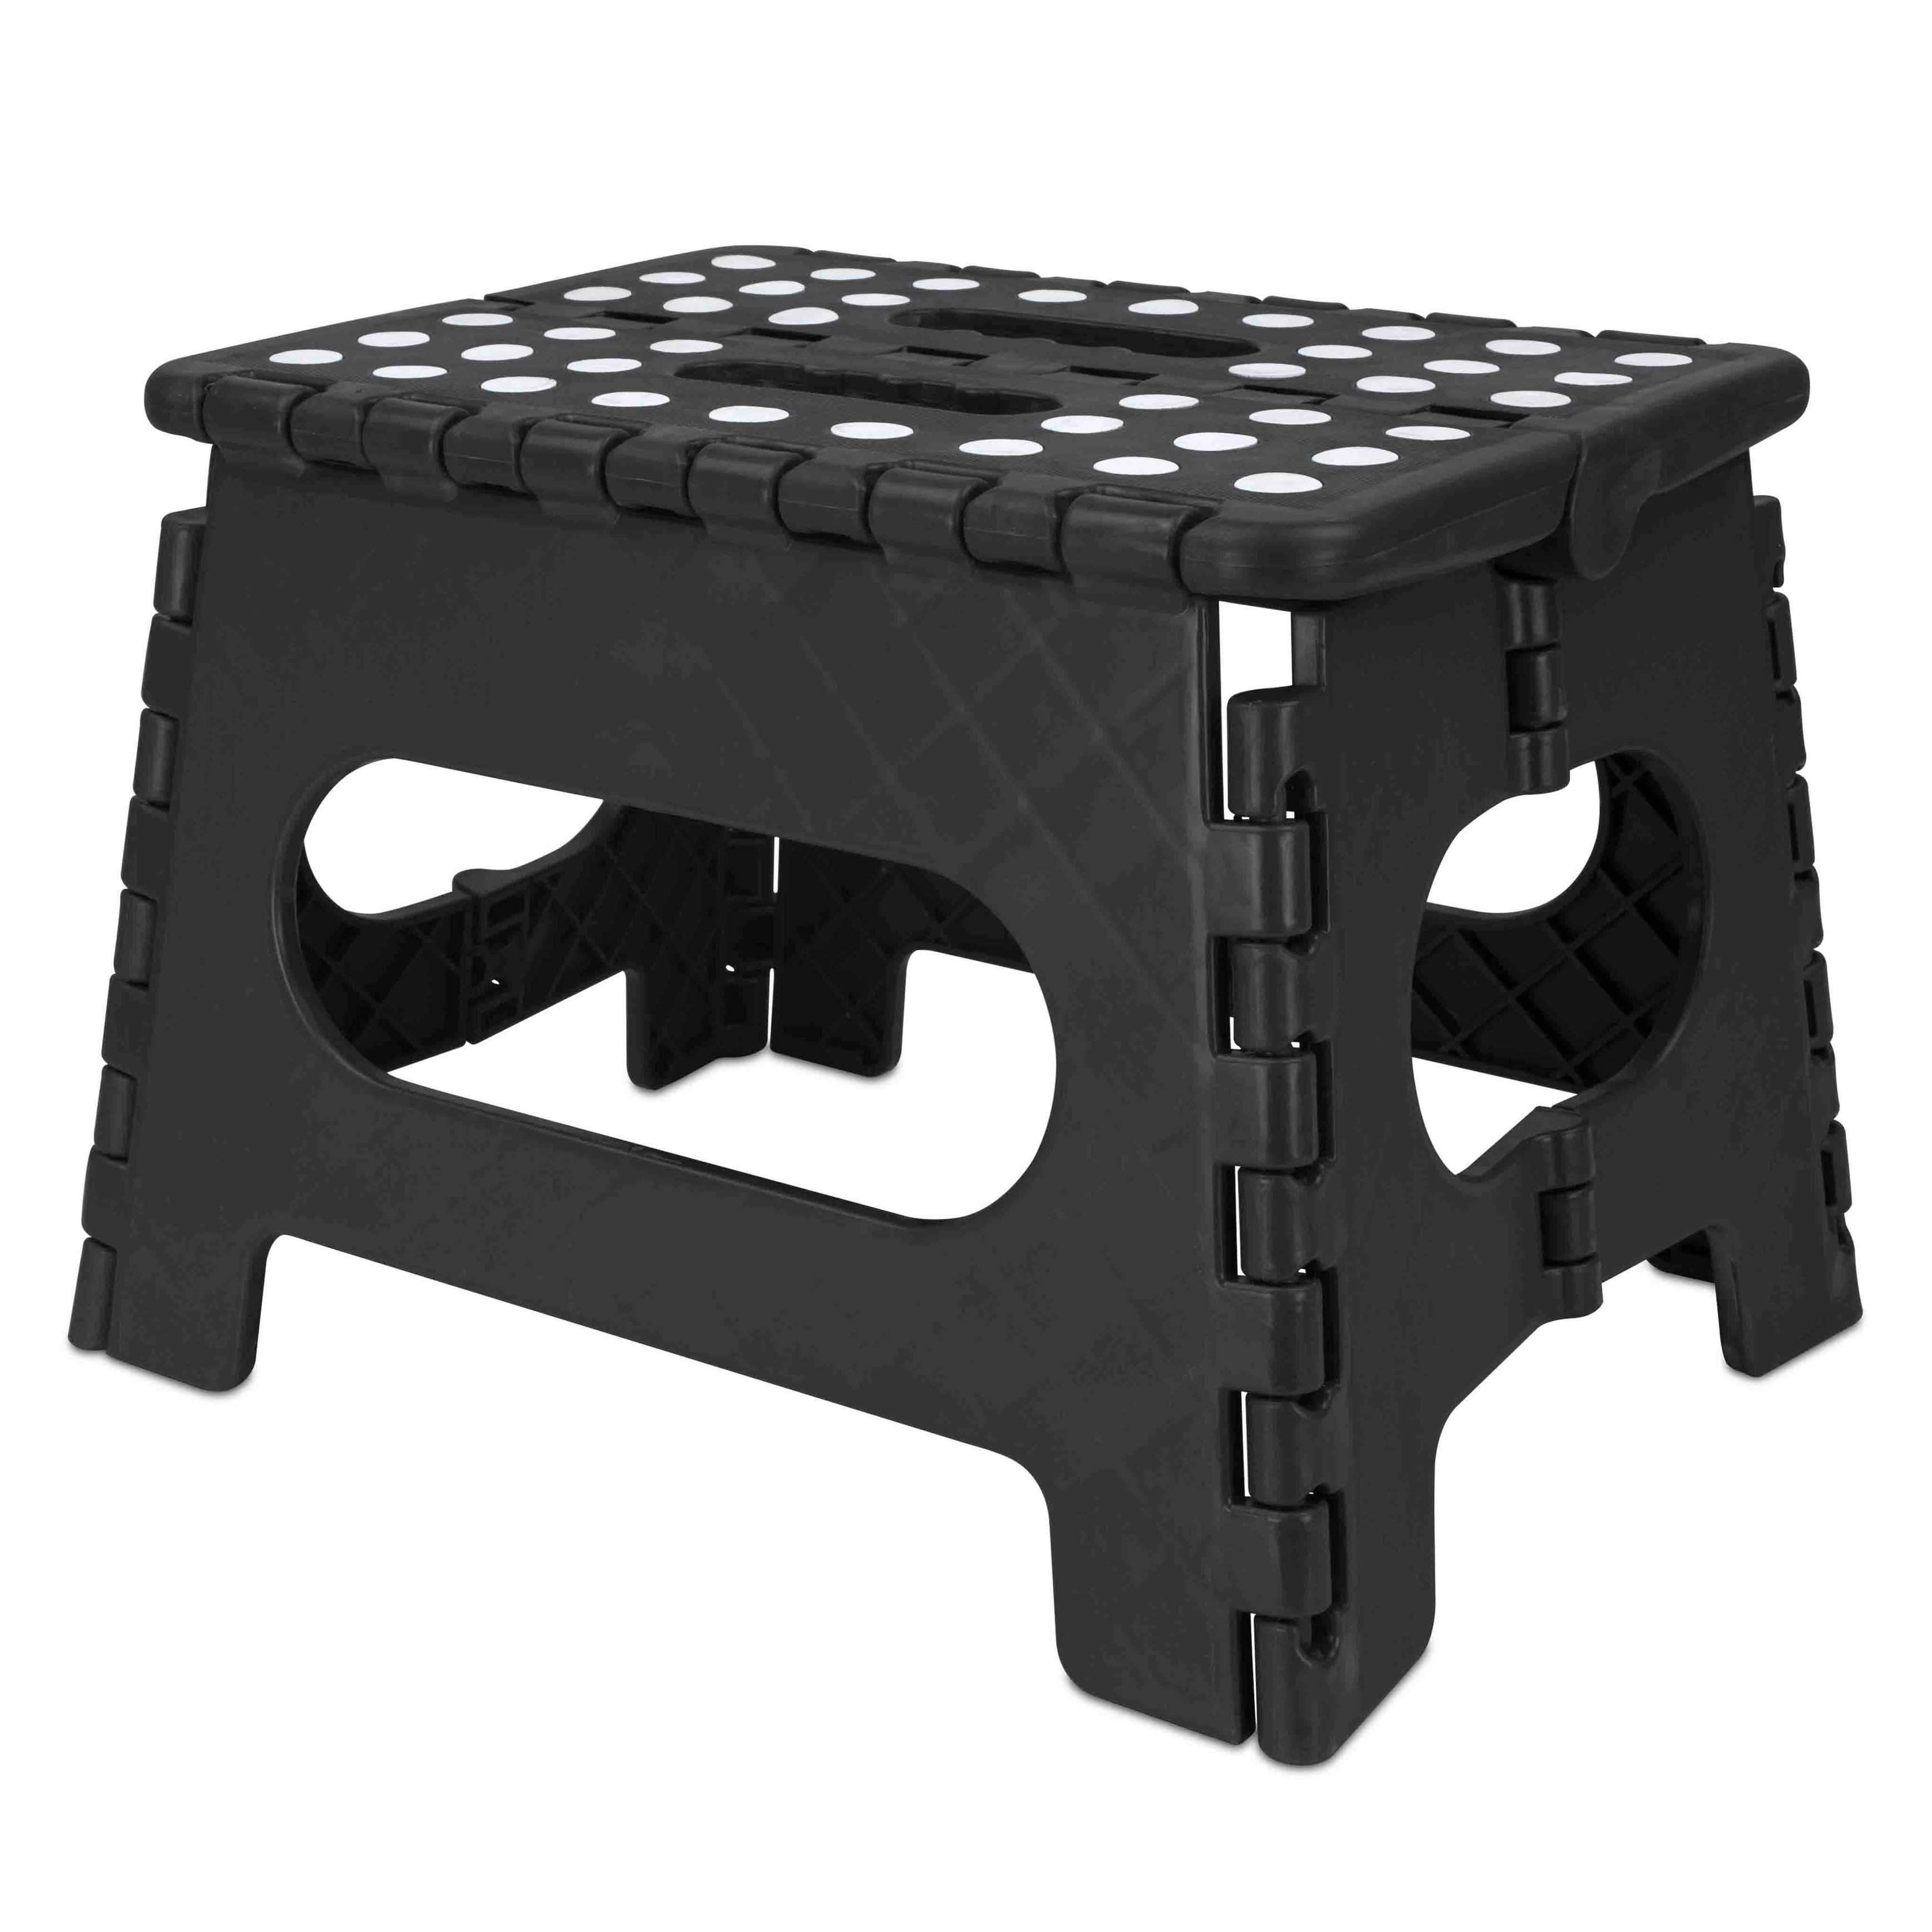 Miraculous Medium Foldable Plastic Stool With Non Slip Dots Black Andrewgaddart Wooden Chair Designs For Living Room Andrewgaddartcom